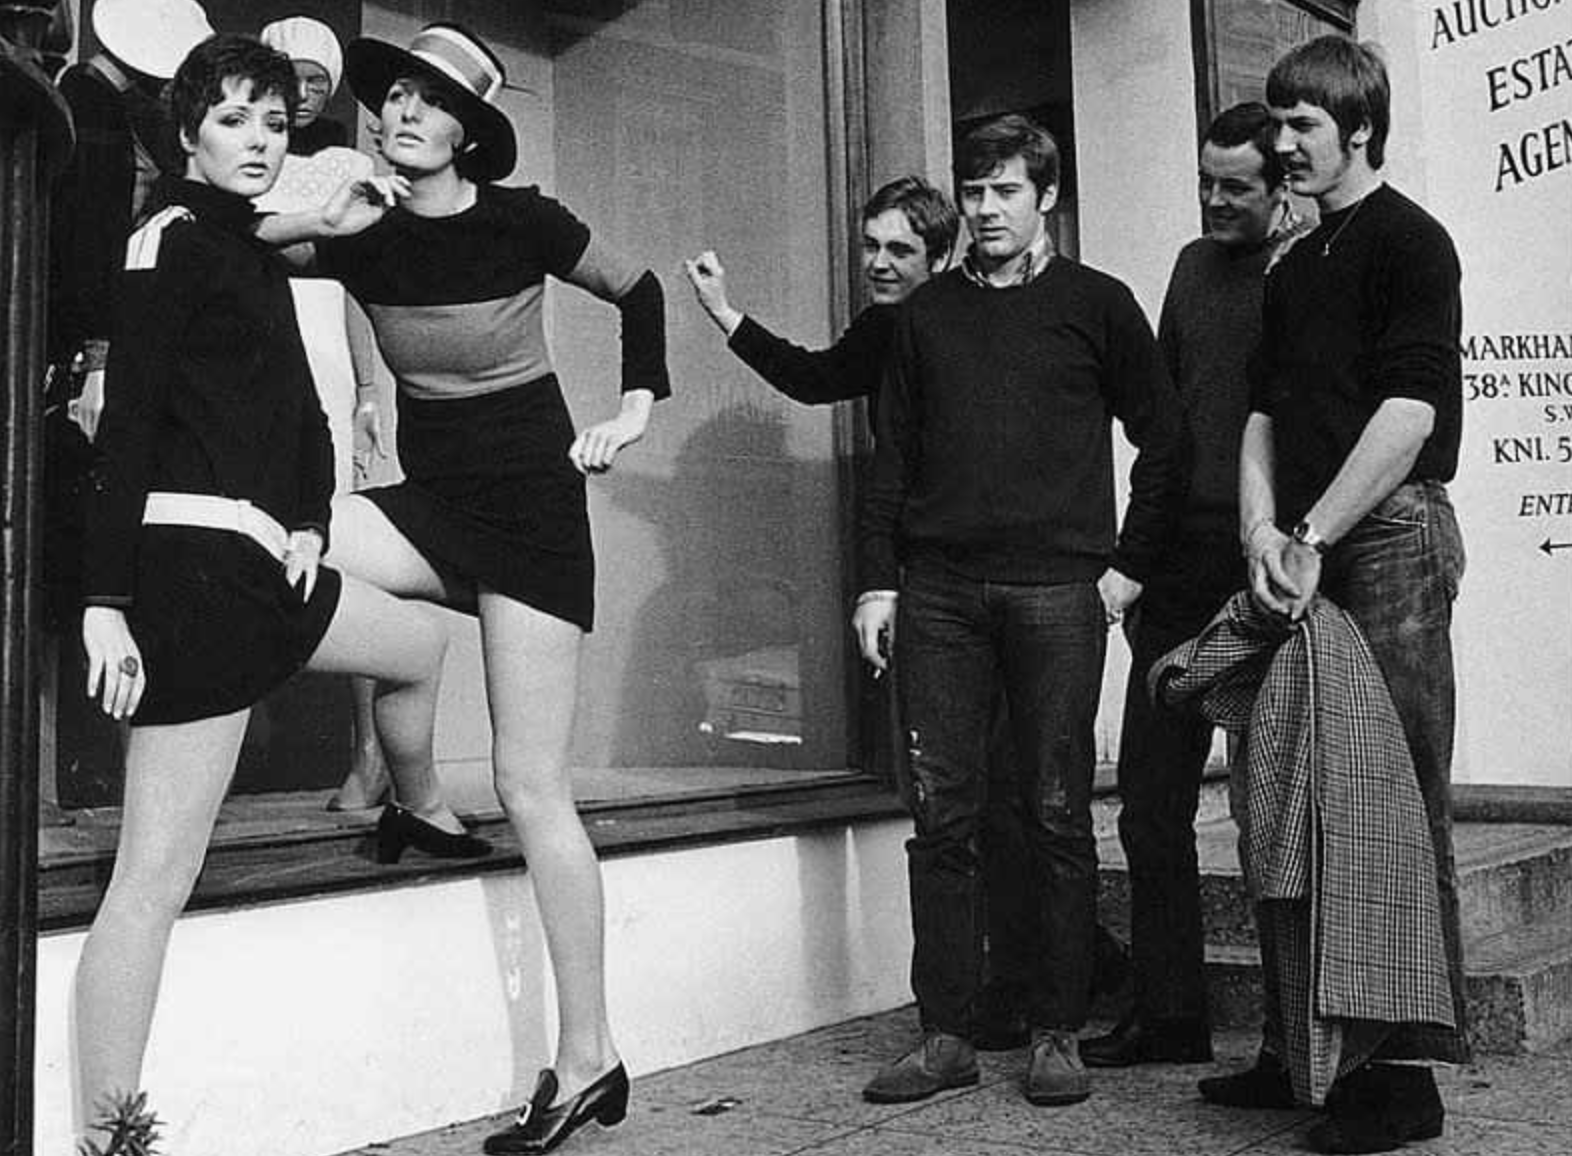 Miniskirts of the 1960's